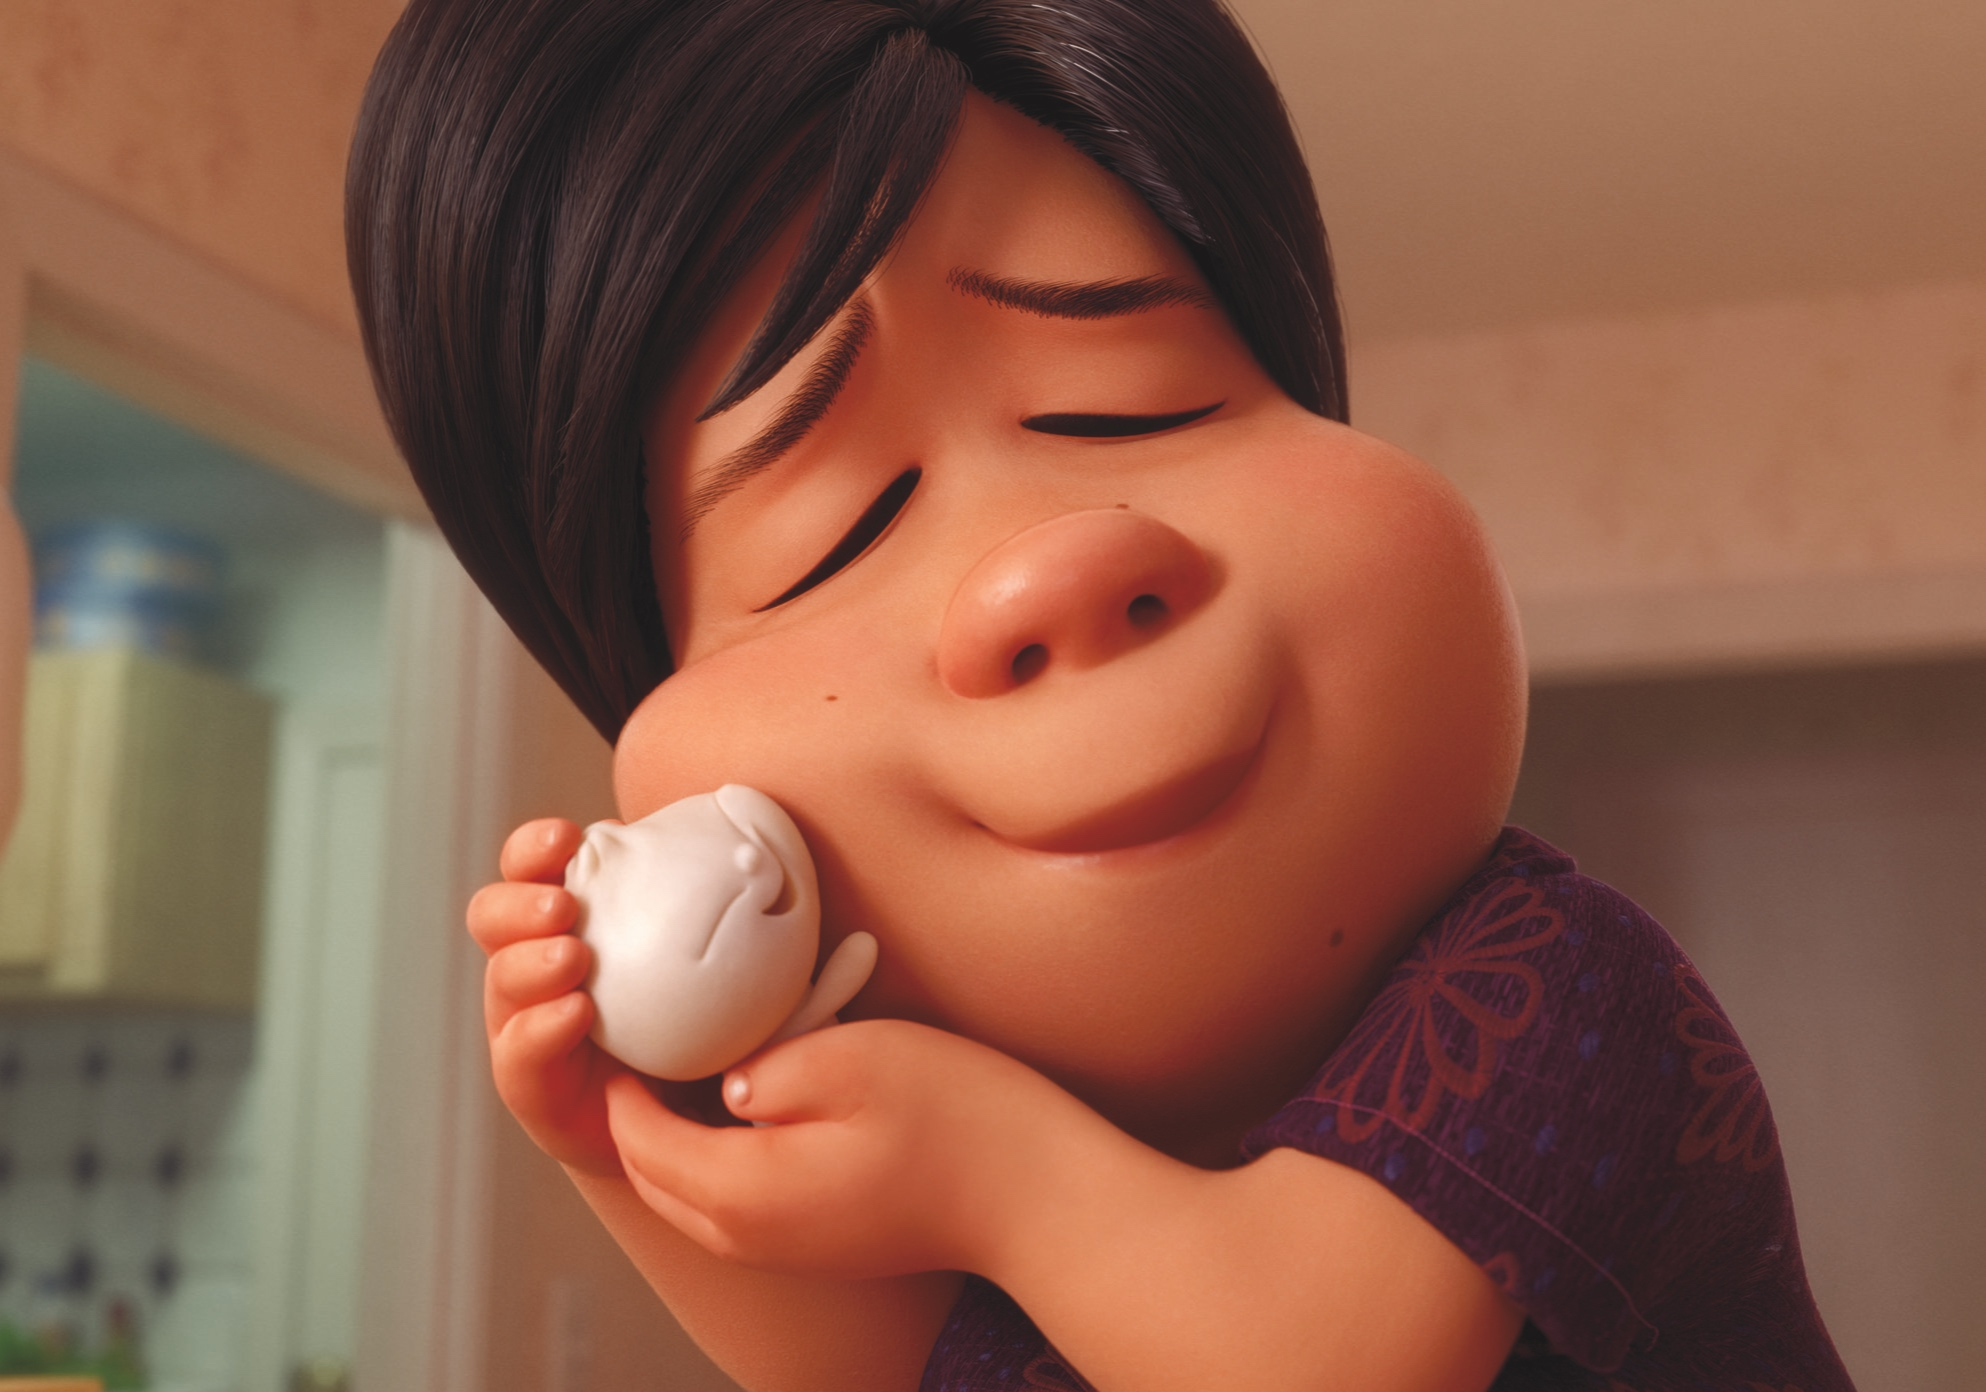 A scene from Domee Shi's Pixar short Bao